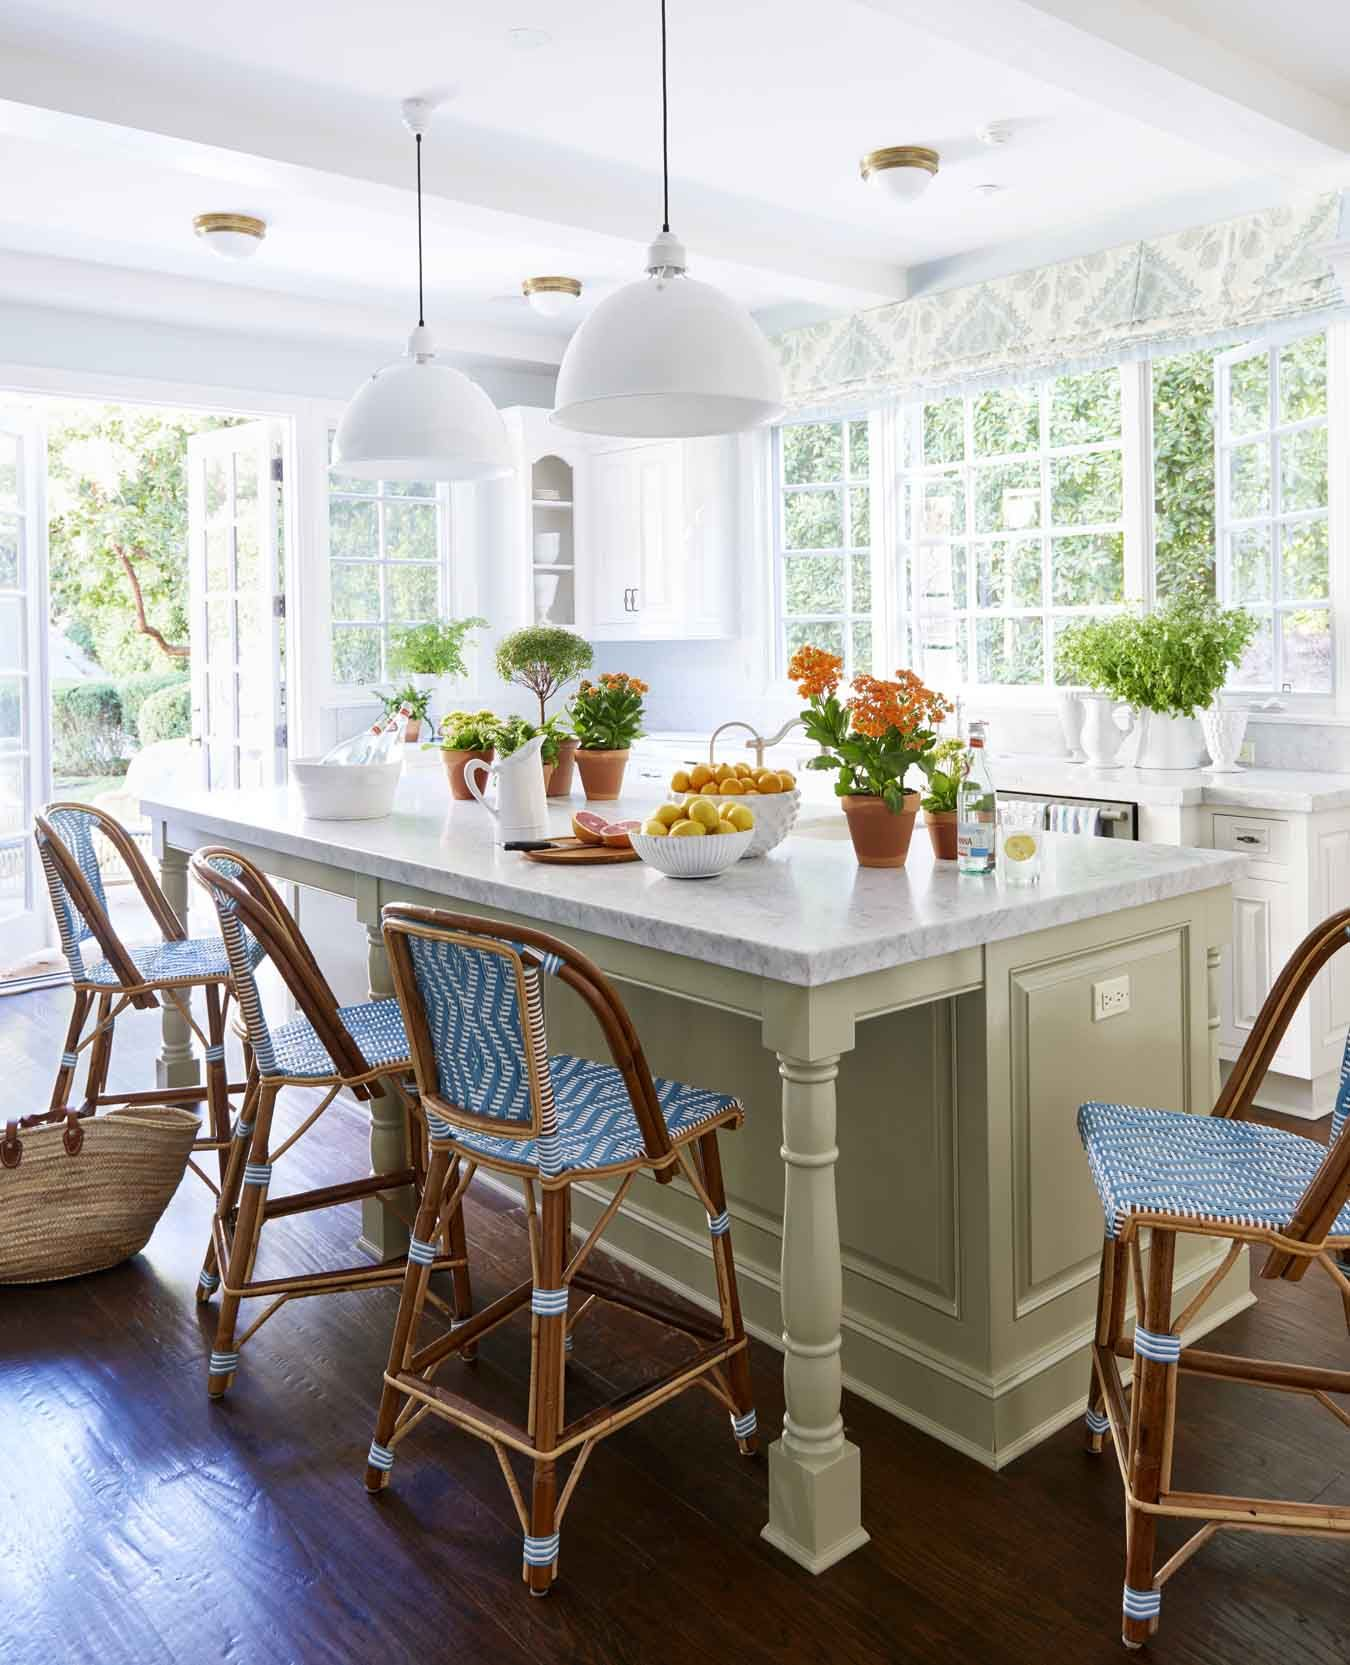 50 Best Kitchen Island Ideas Stylish Designs For Kitchen Islands